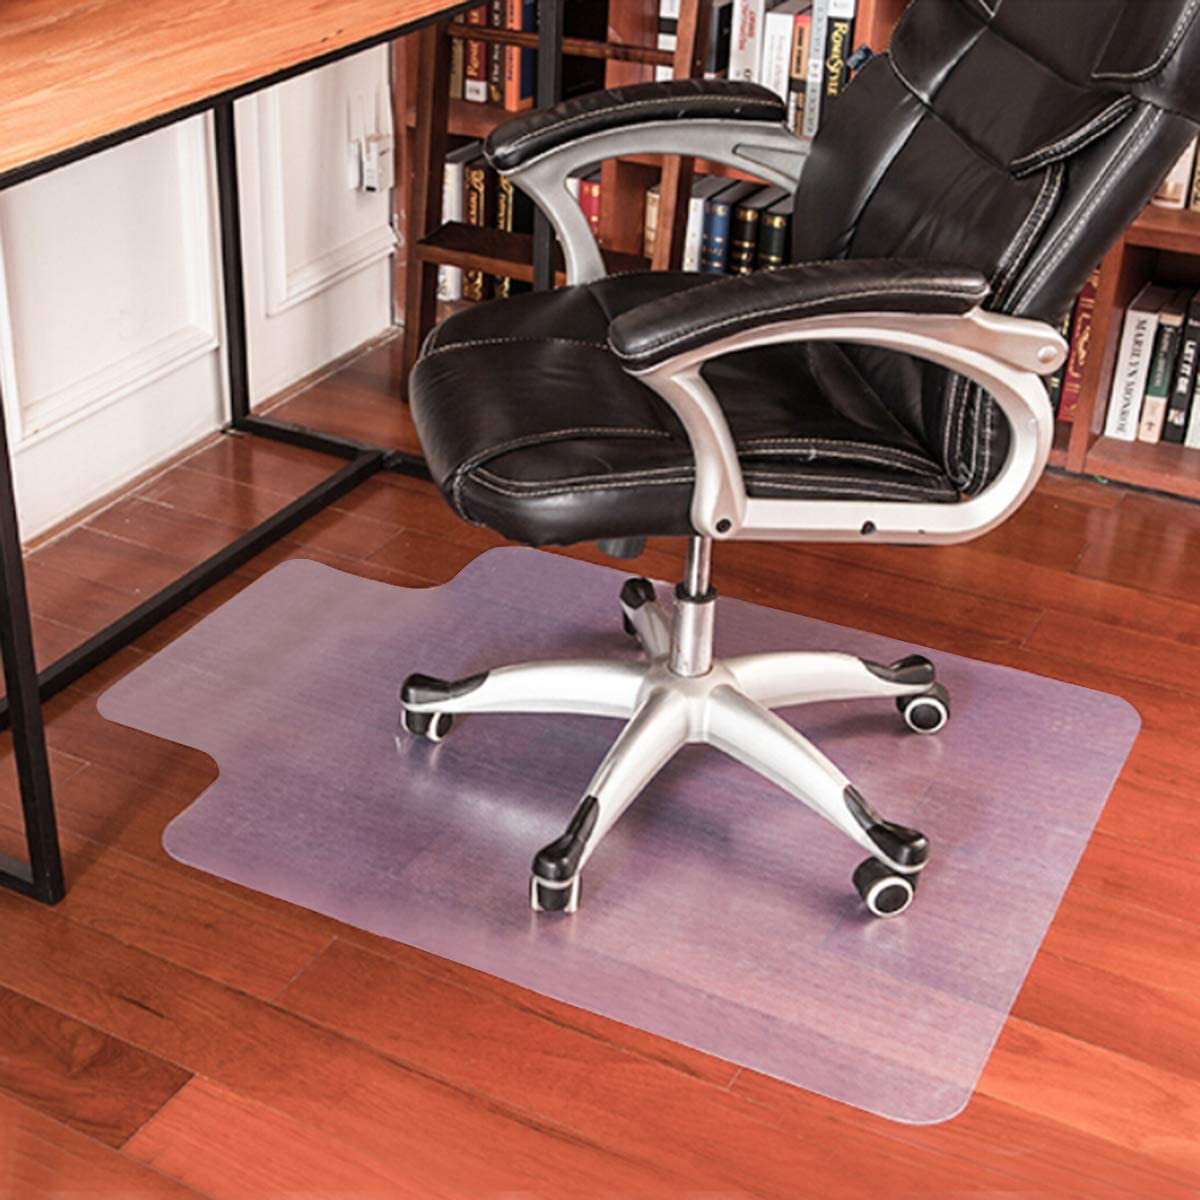 Anti-Slip PVC Floor Protector Mats for Office Home Happygrill 48 x 36 Chair Mat for Hardwood Floor